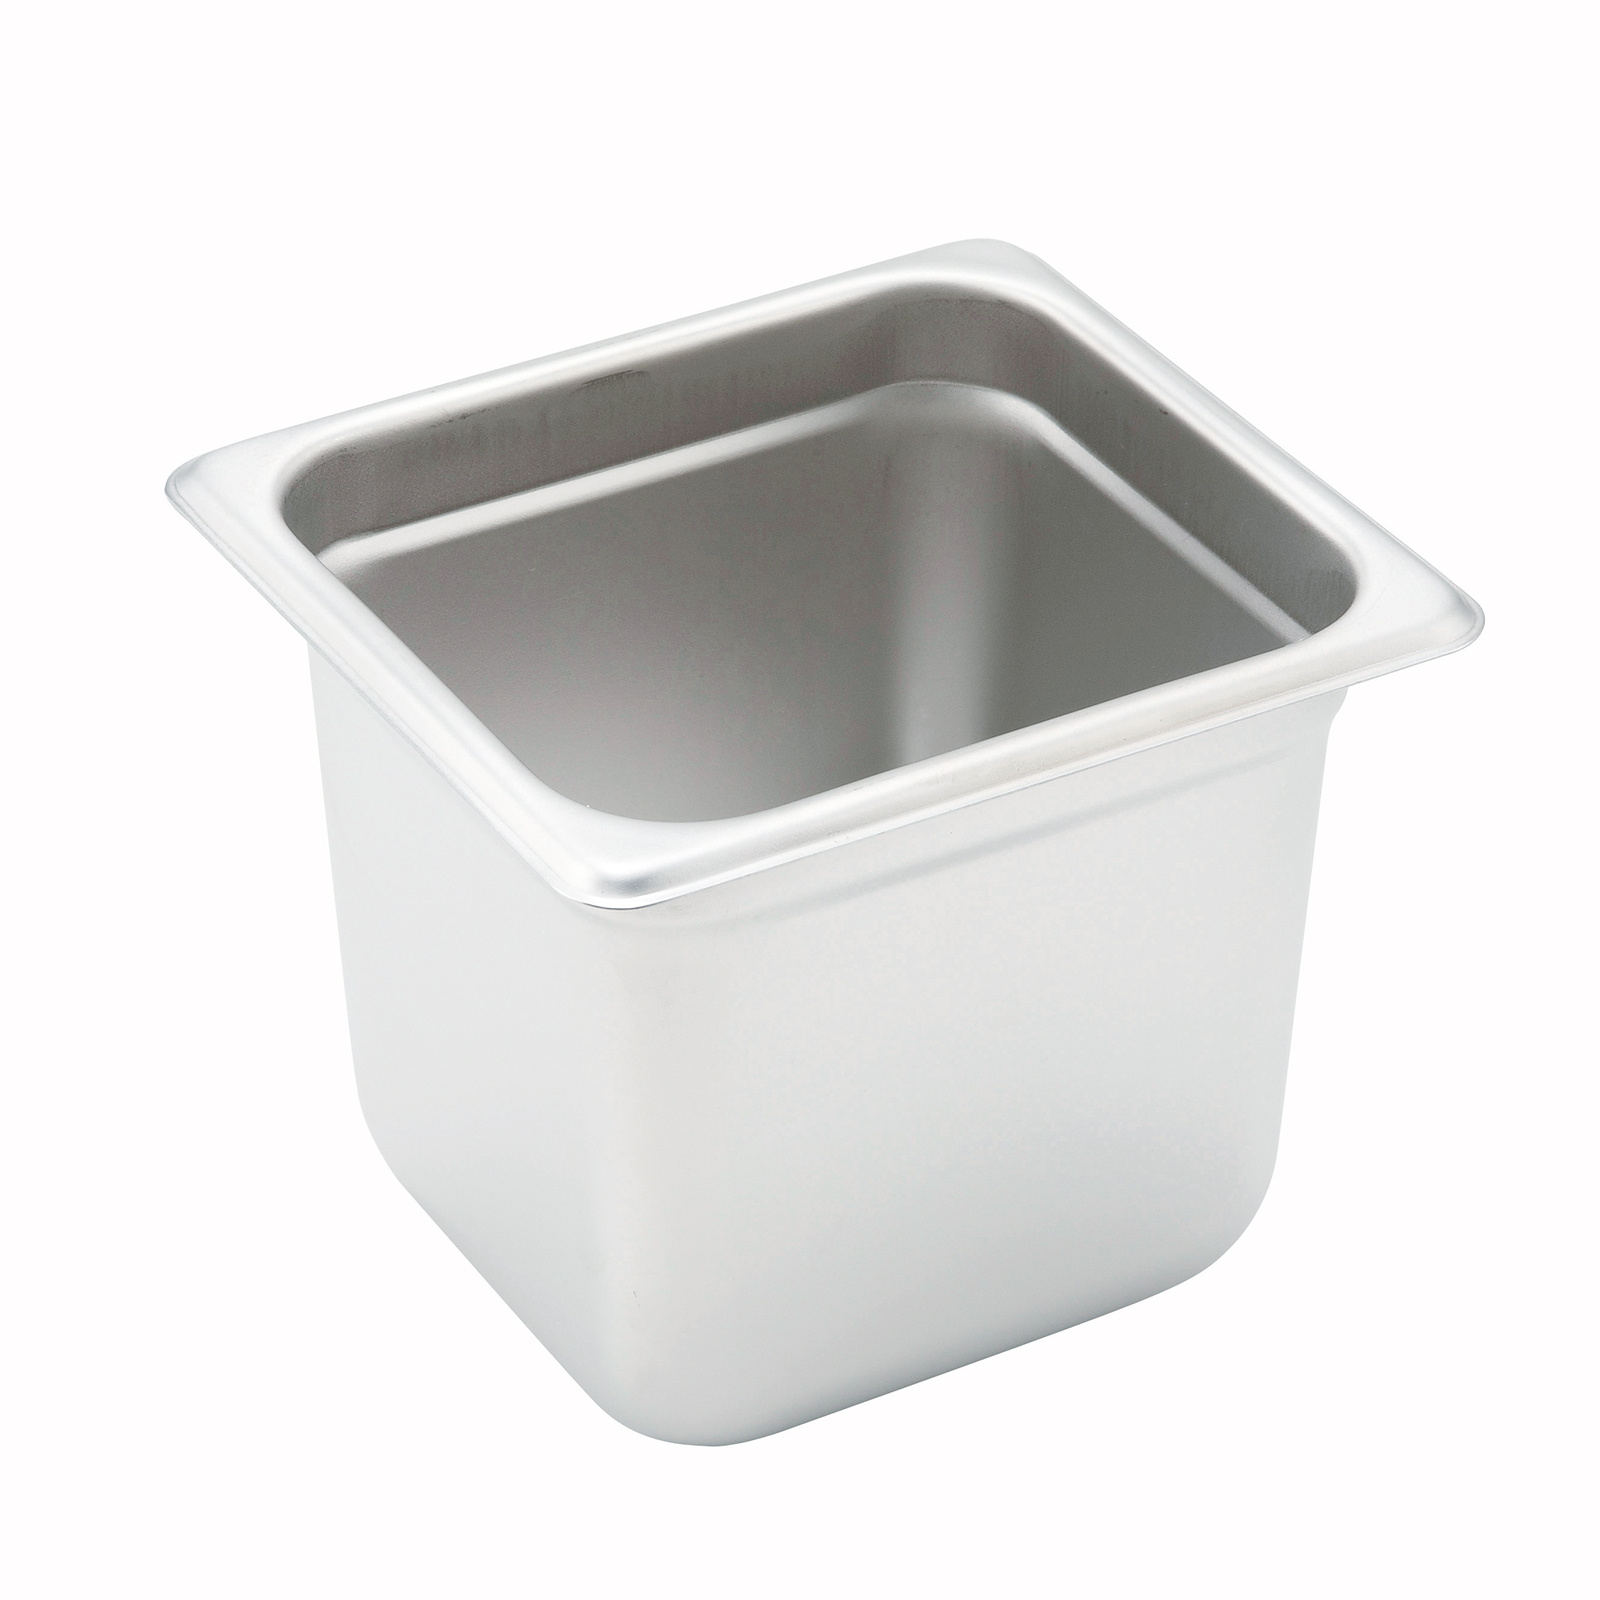 Winco SPJH-606 steam table pan, stainless steel